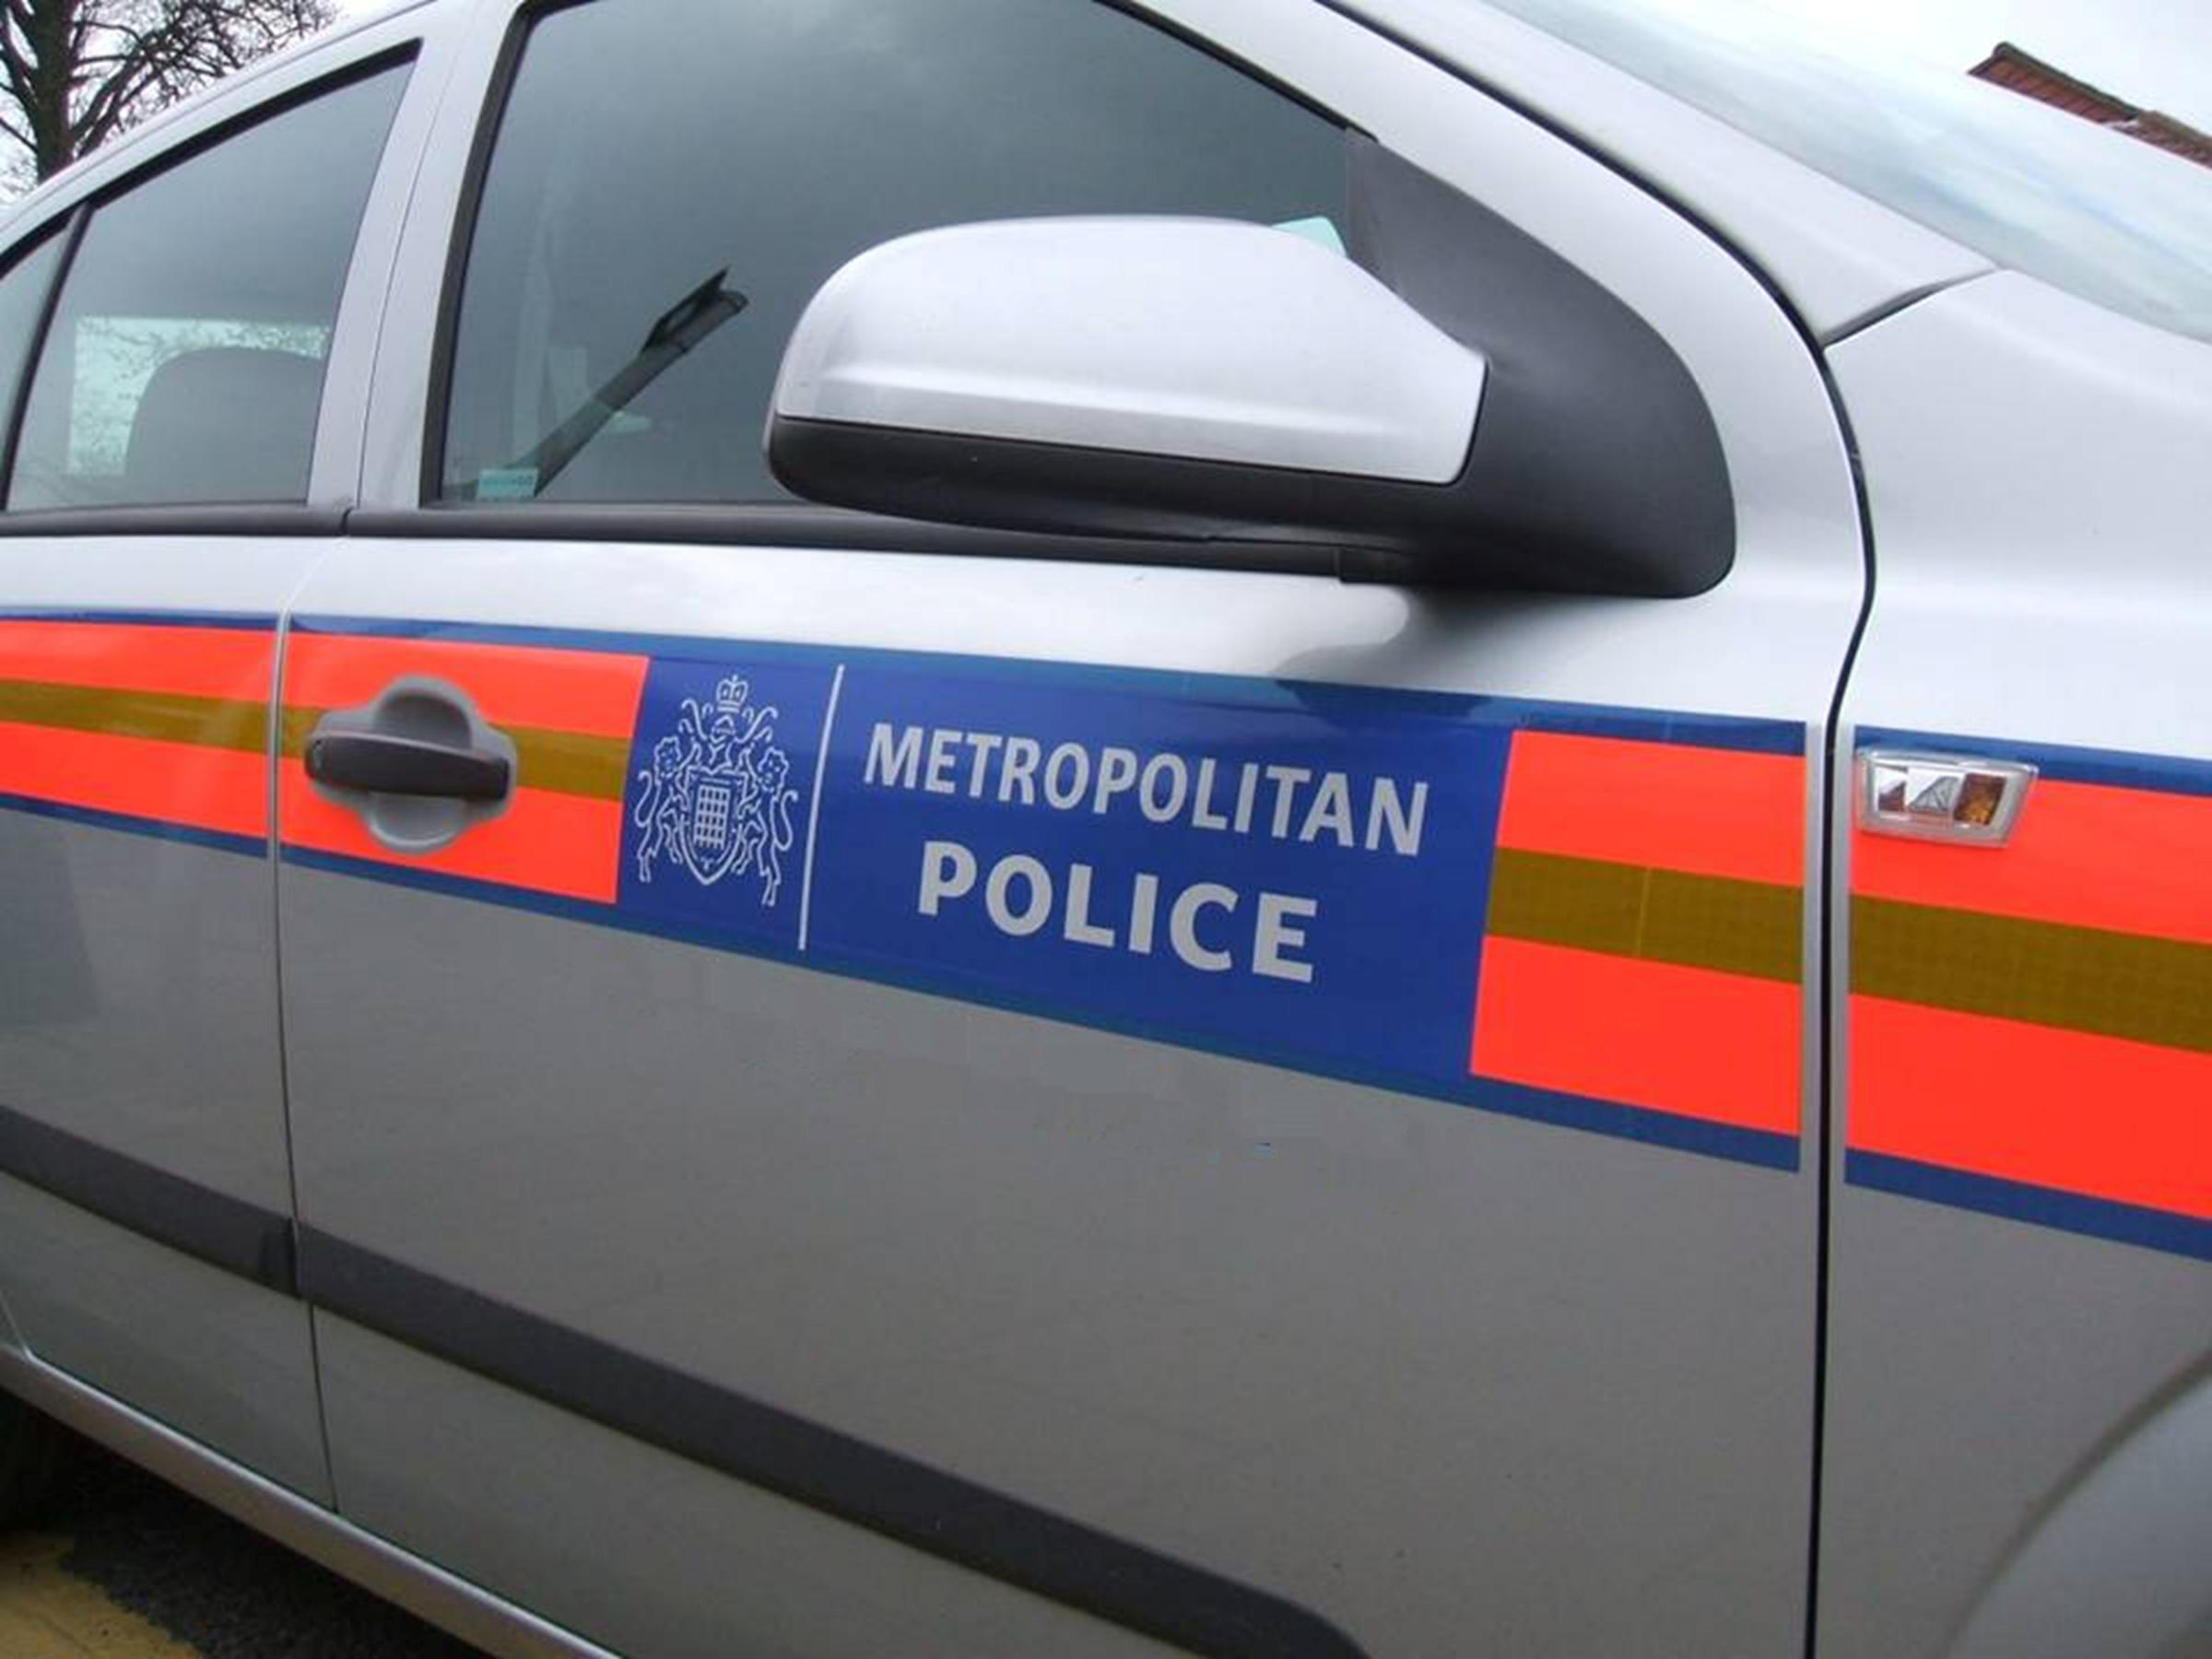 17-year-old boy in Woolwich stabbed from behind in morning attack